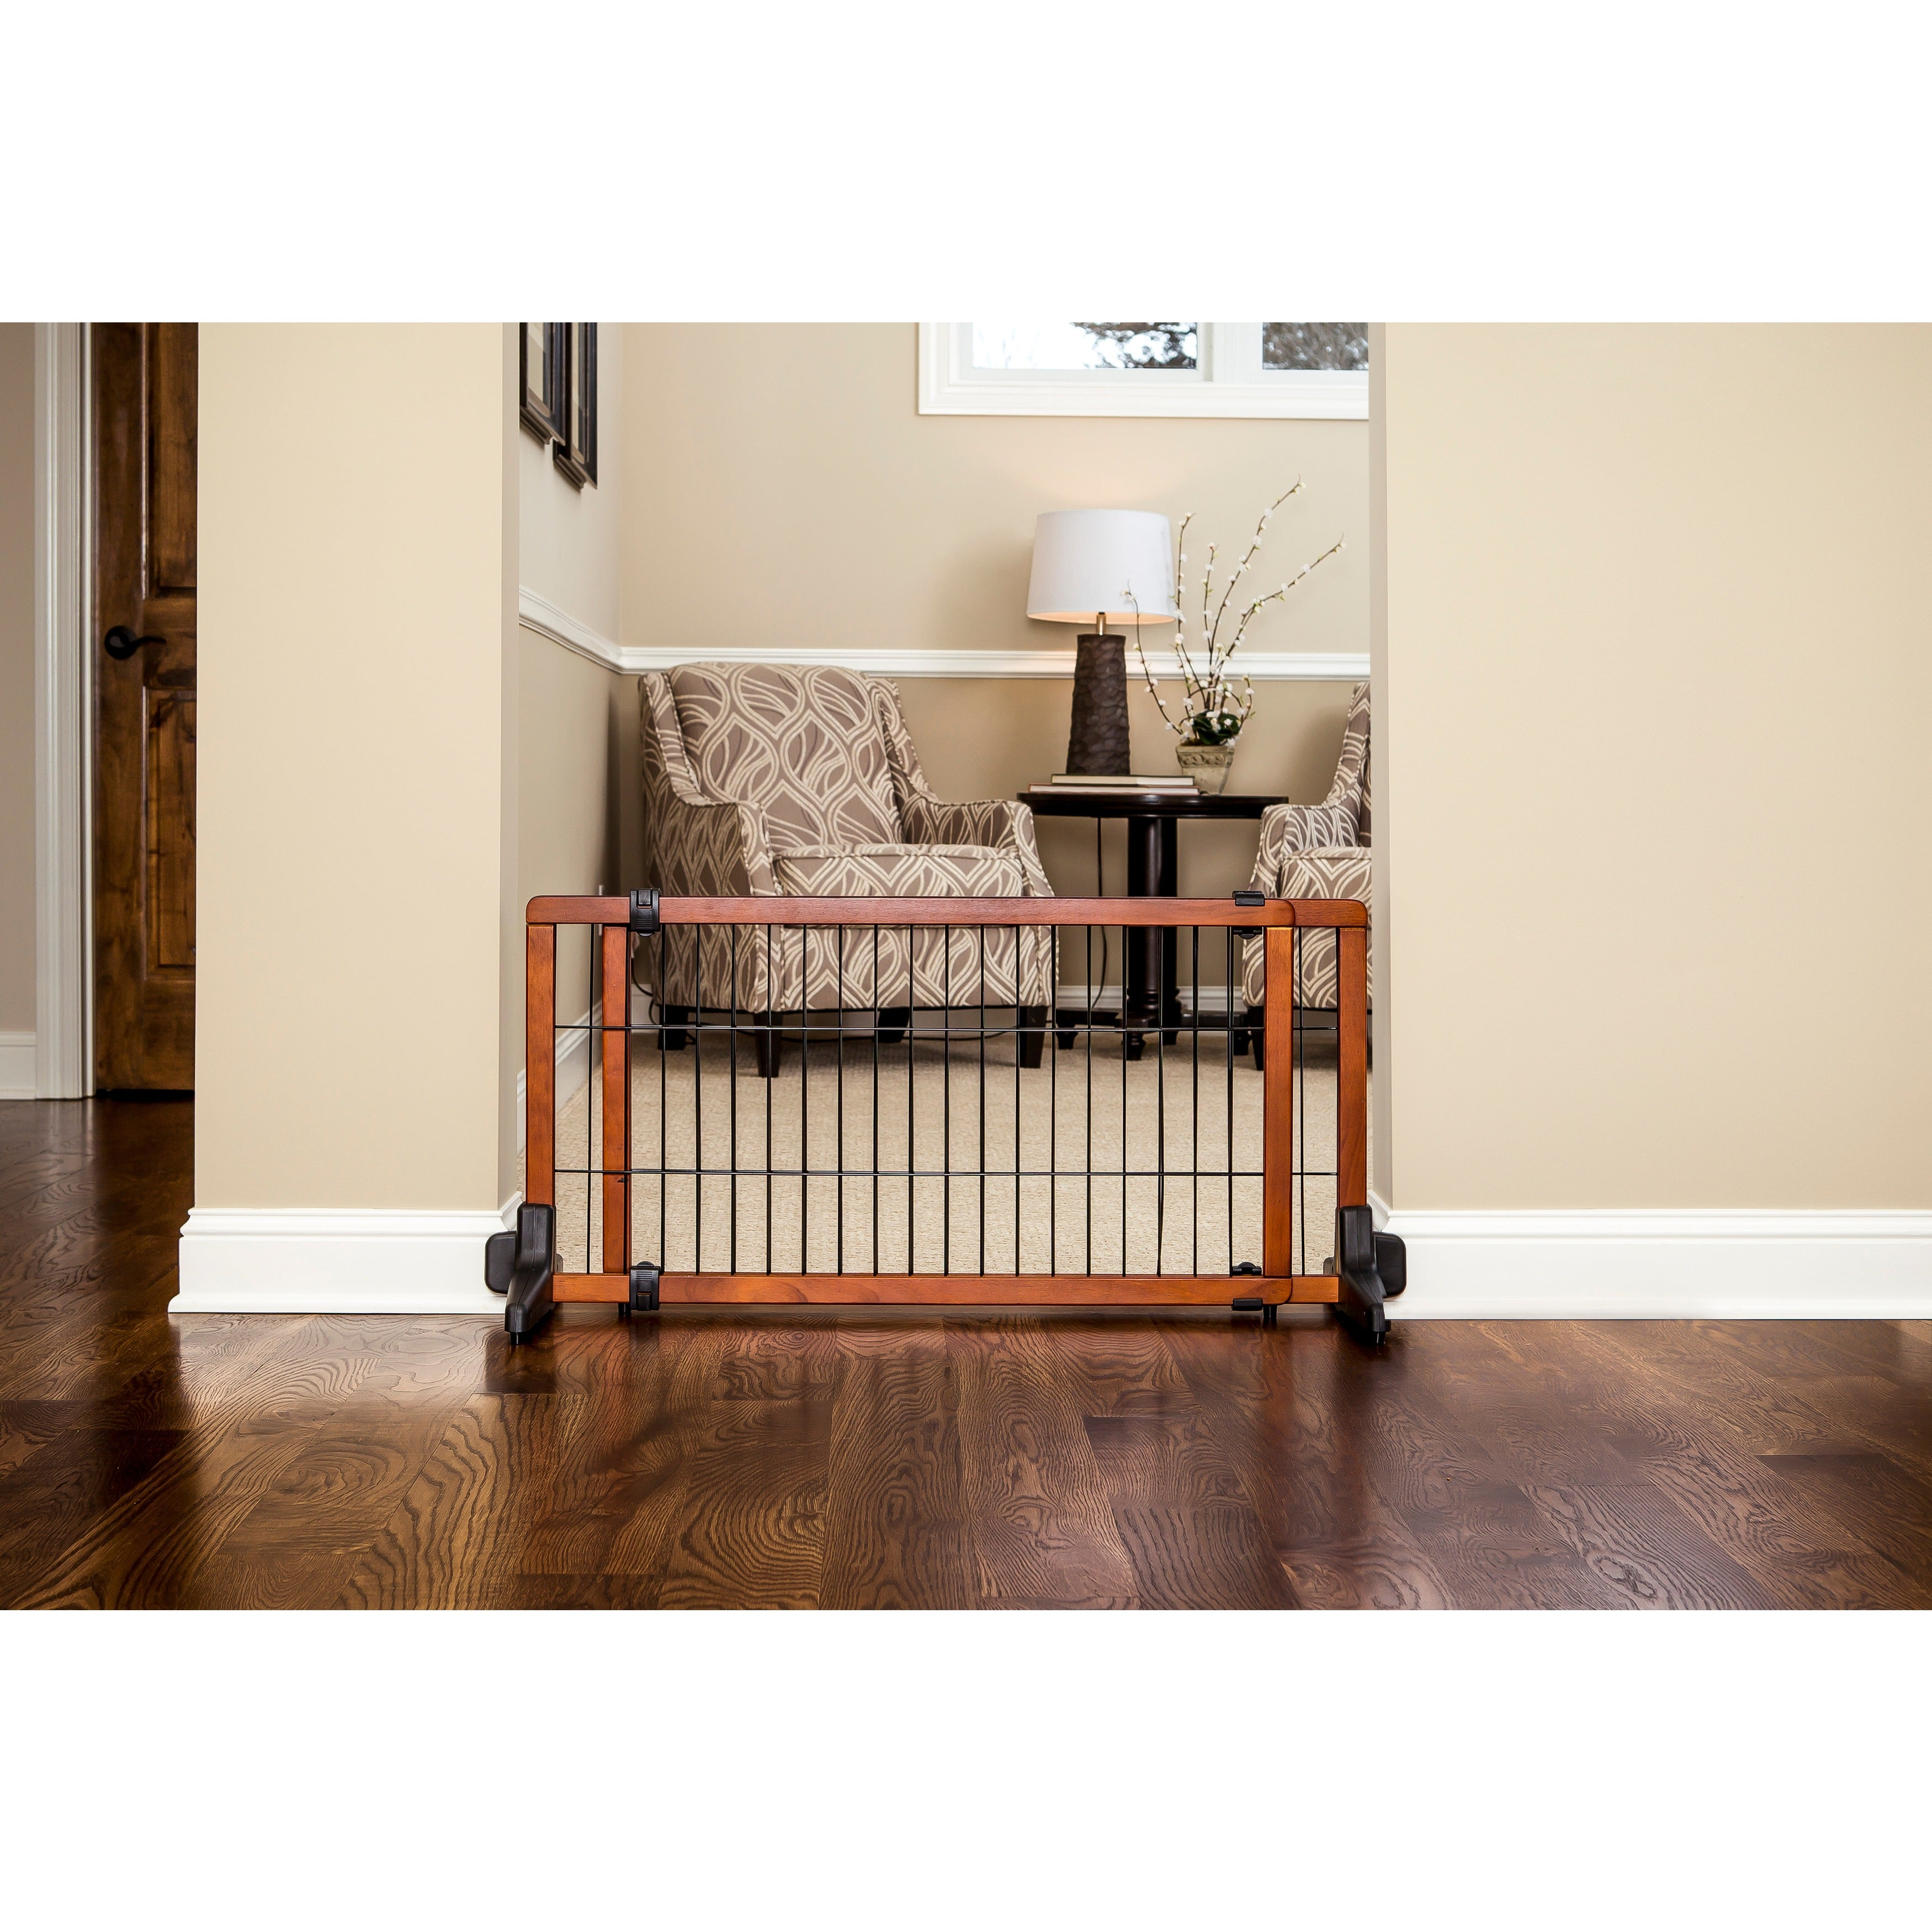 f655ae22011 Shop Carlson Free-standing Wooden Pet Gate - Free Shipping Today ...